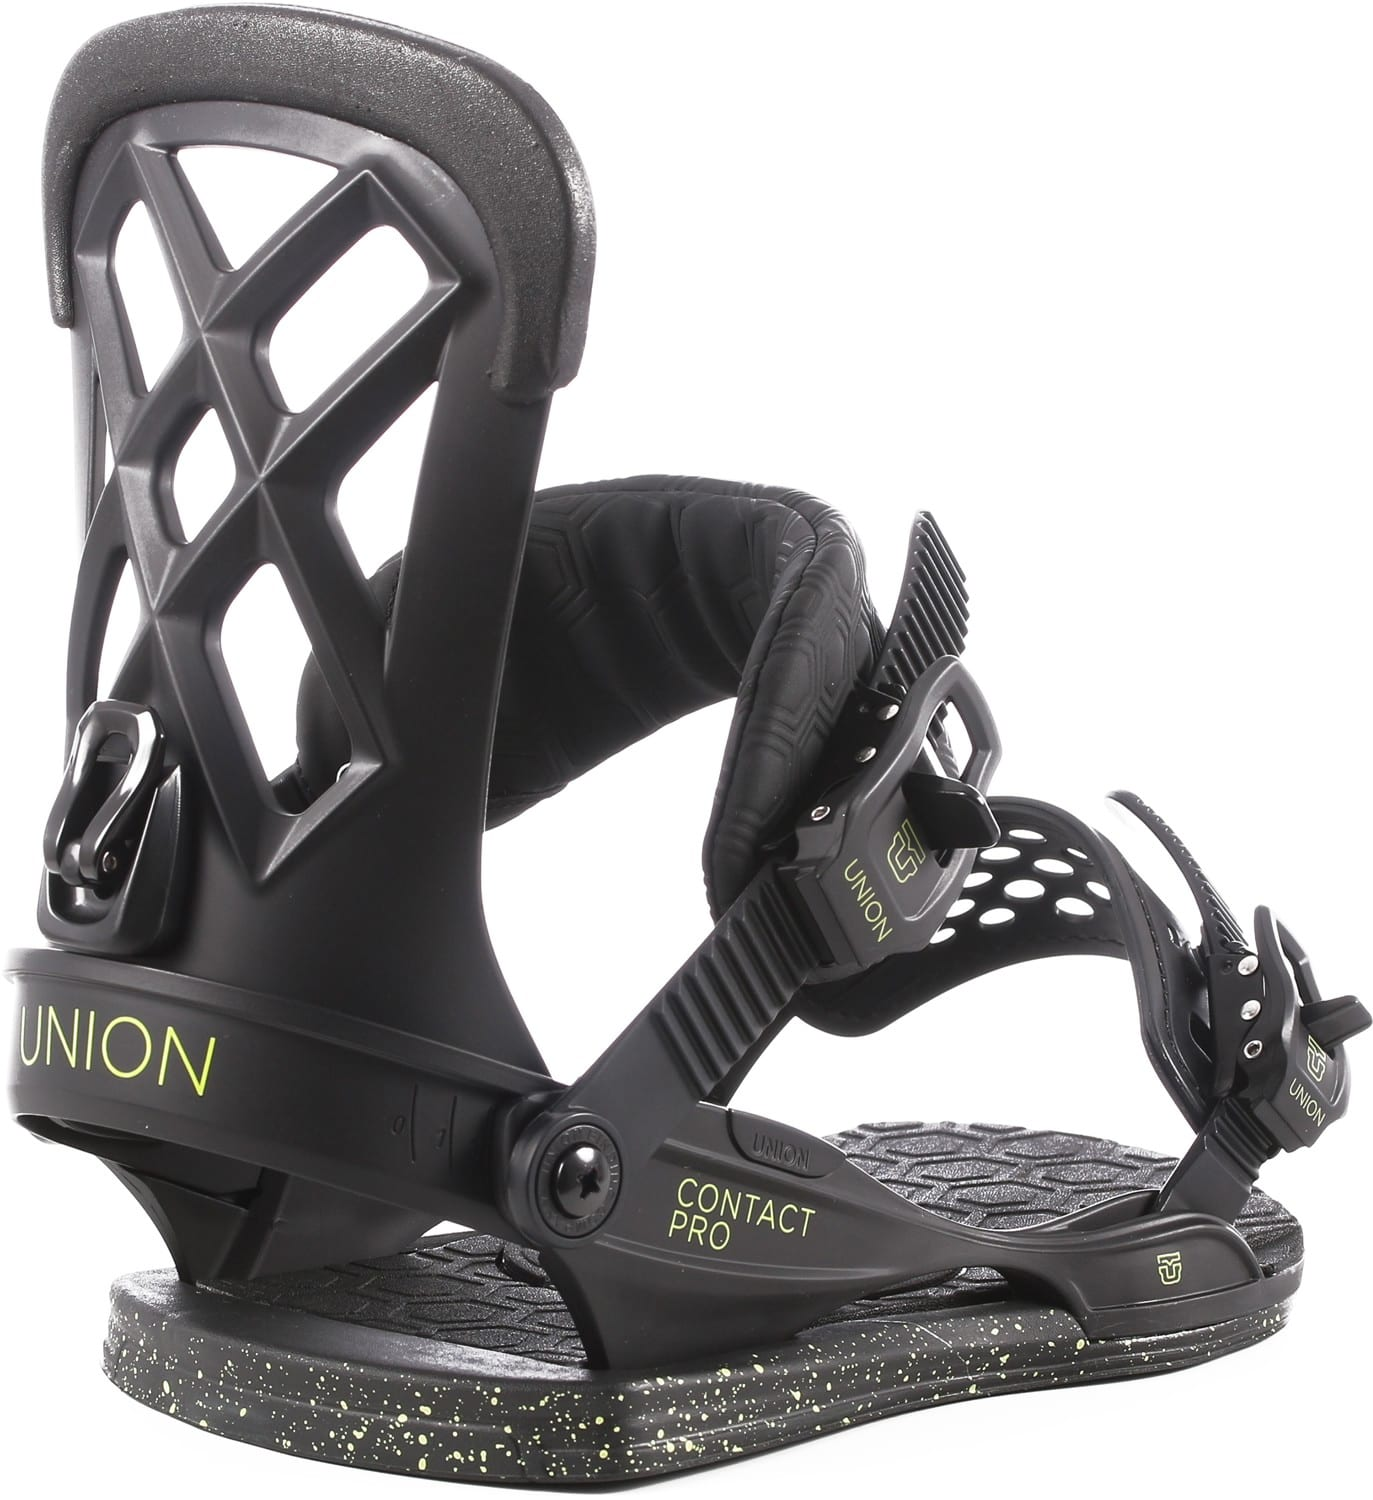 Union Contact Pro Snowboard Bindings 2017